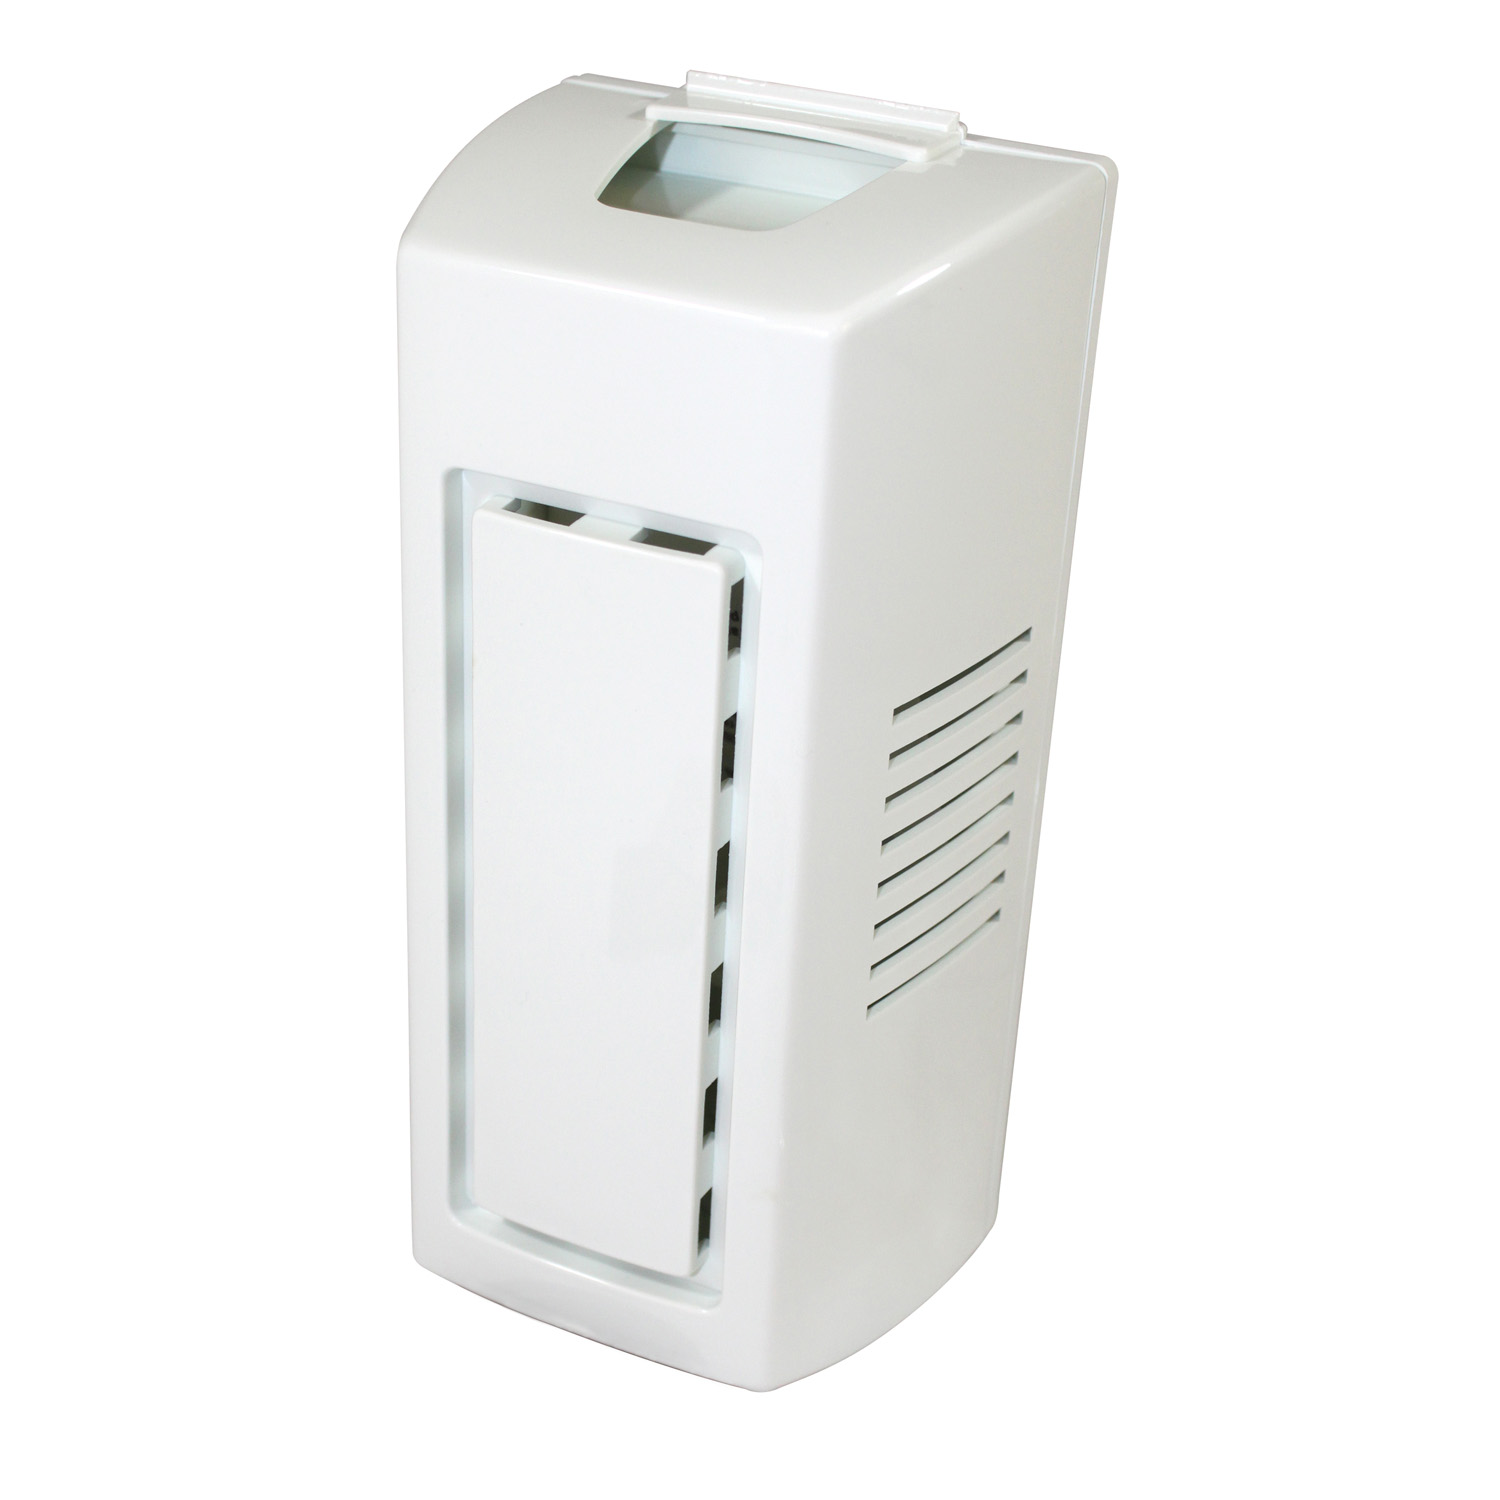 Impact Products 300 air freshener dispenser